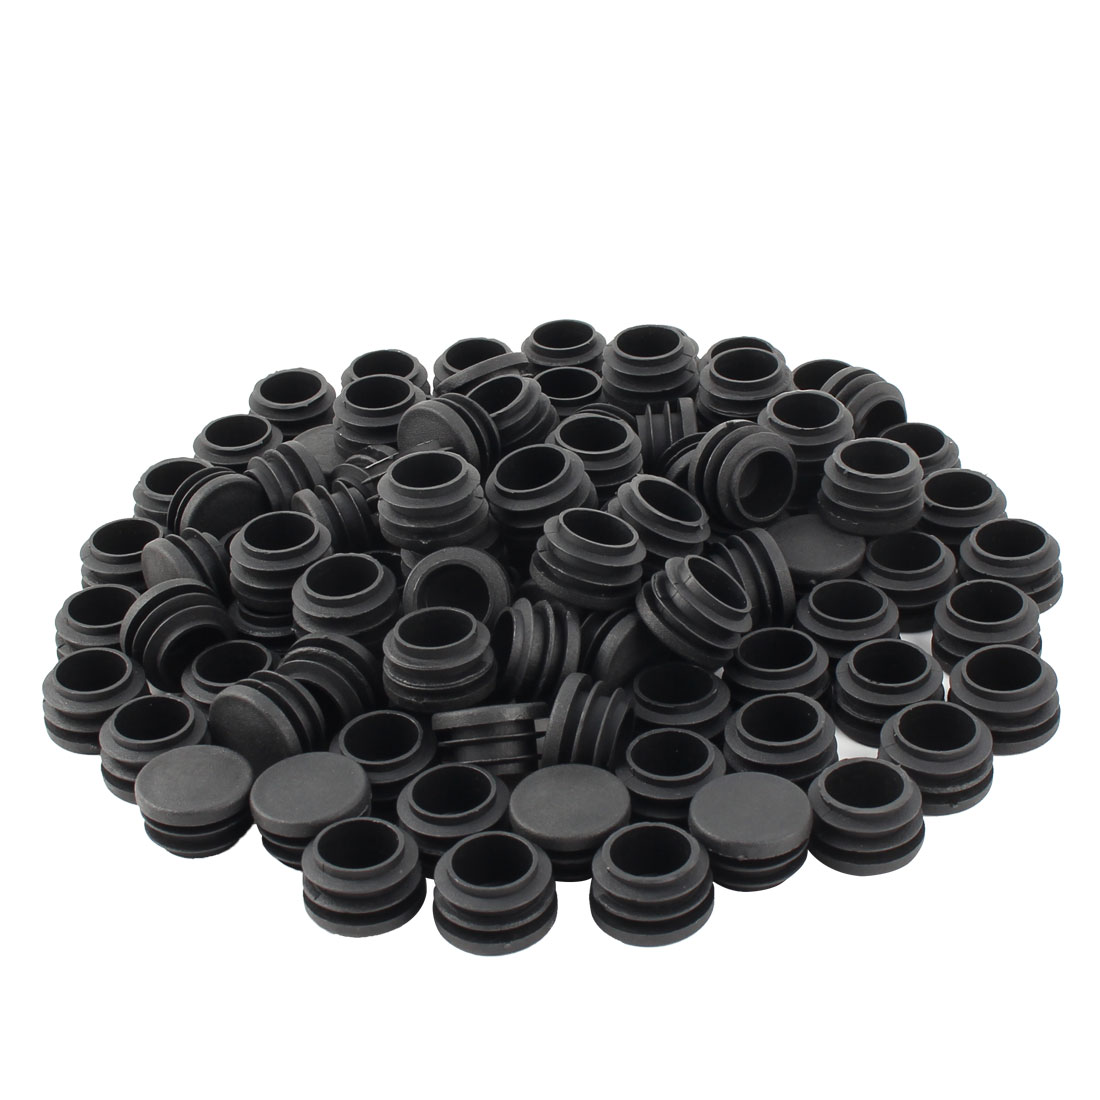 Furniture Table Chair Legs Plastic Flat Base Round Tube Pipe Insert Cap Cover Black 28mm Dia 100pcs